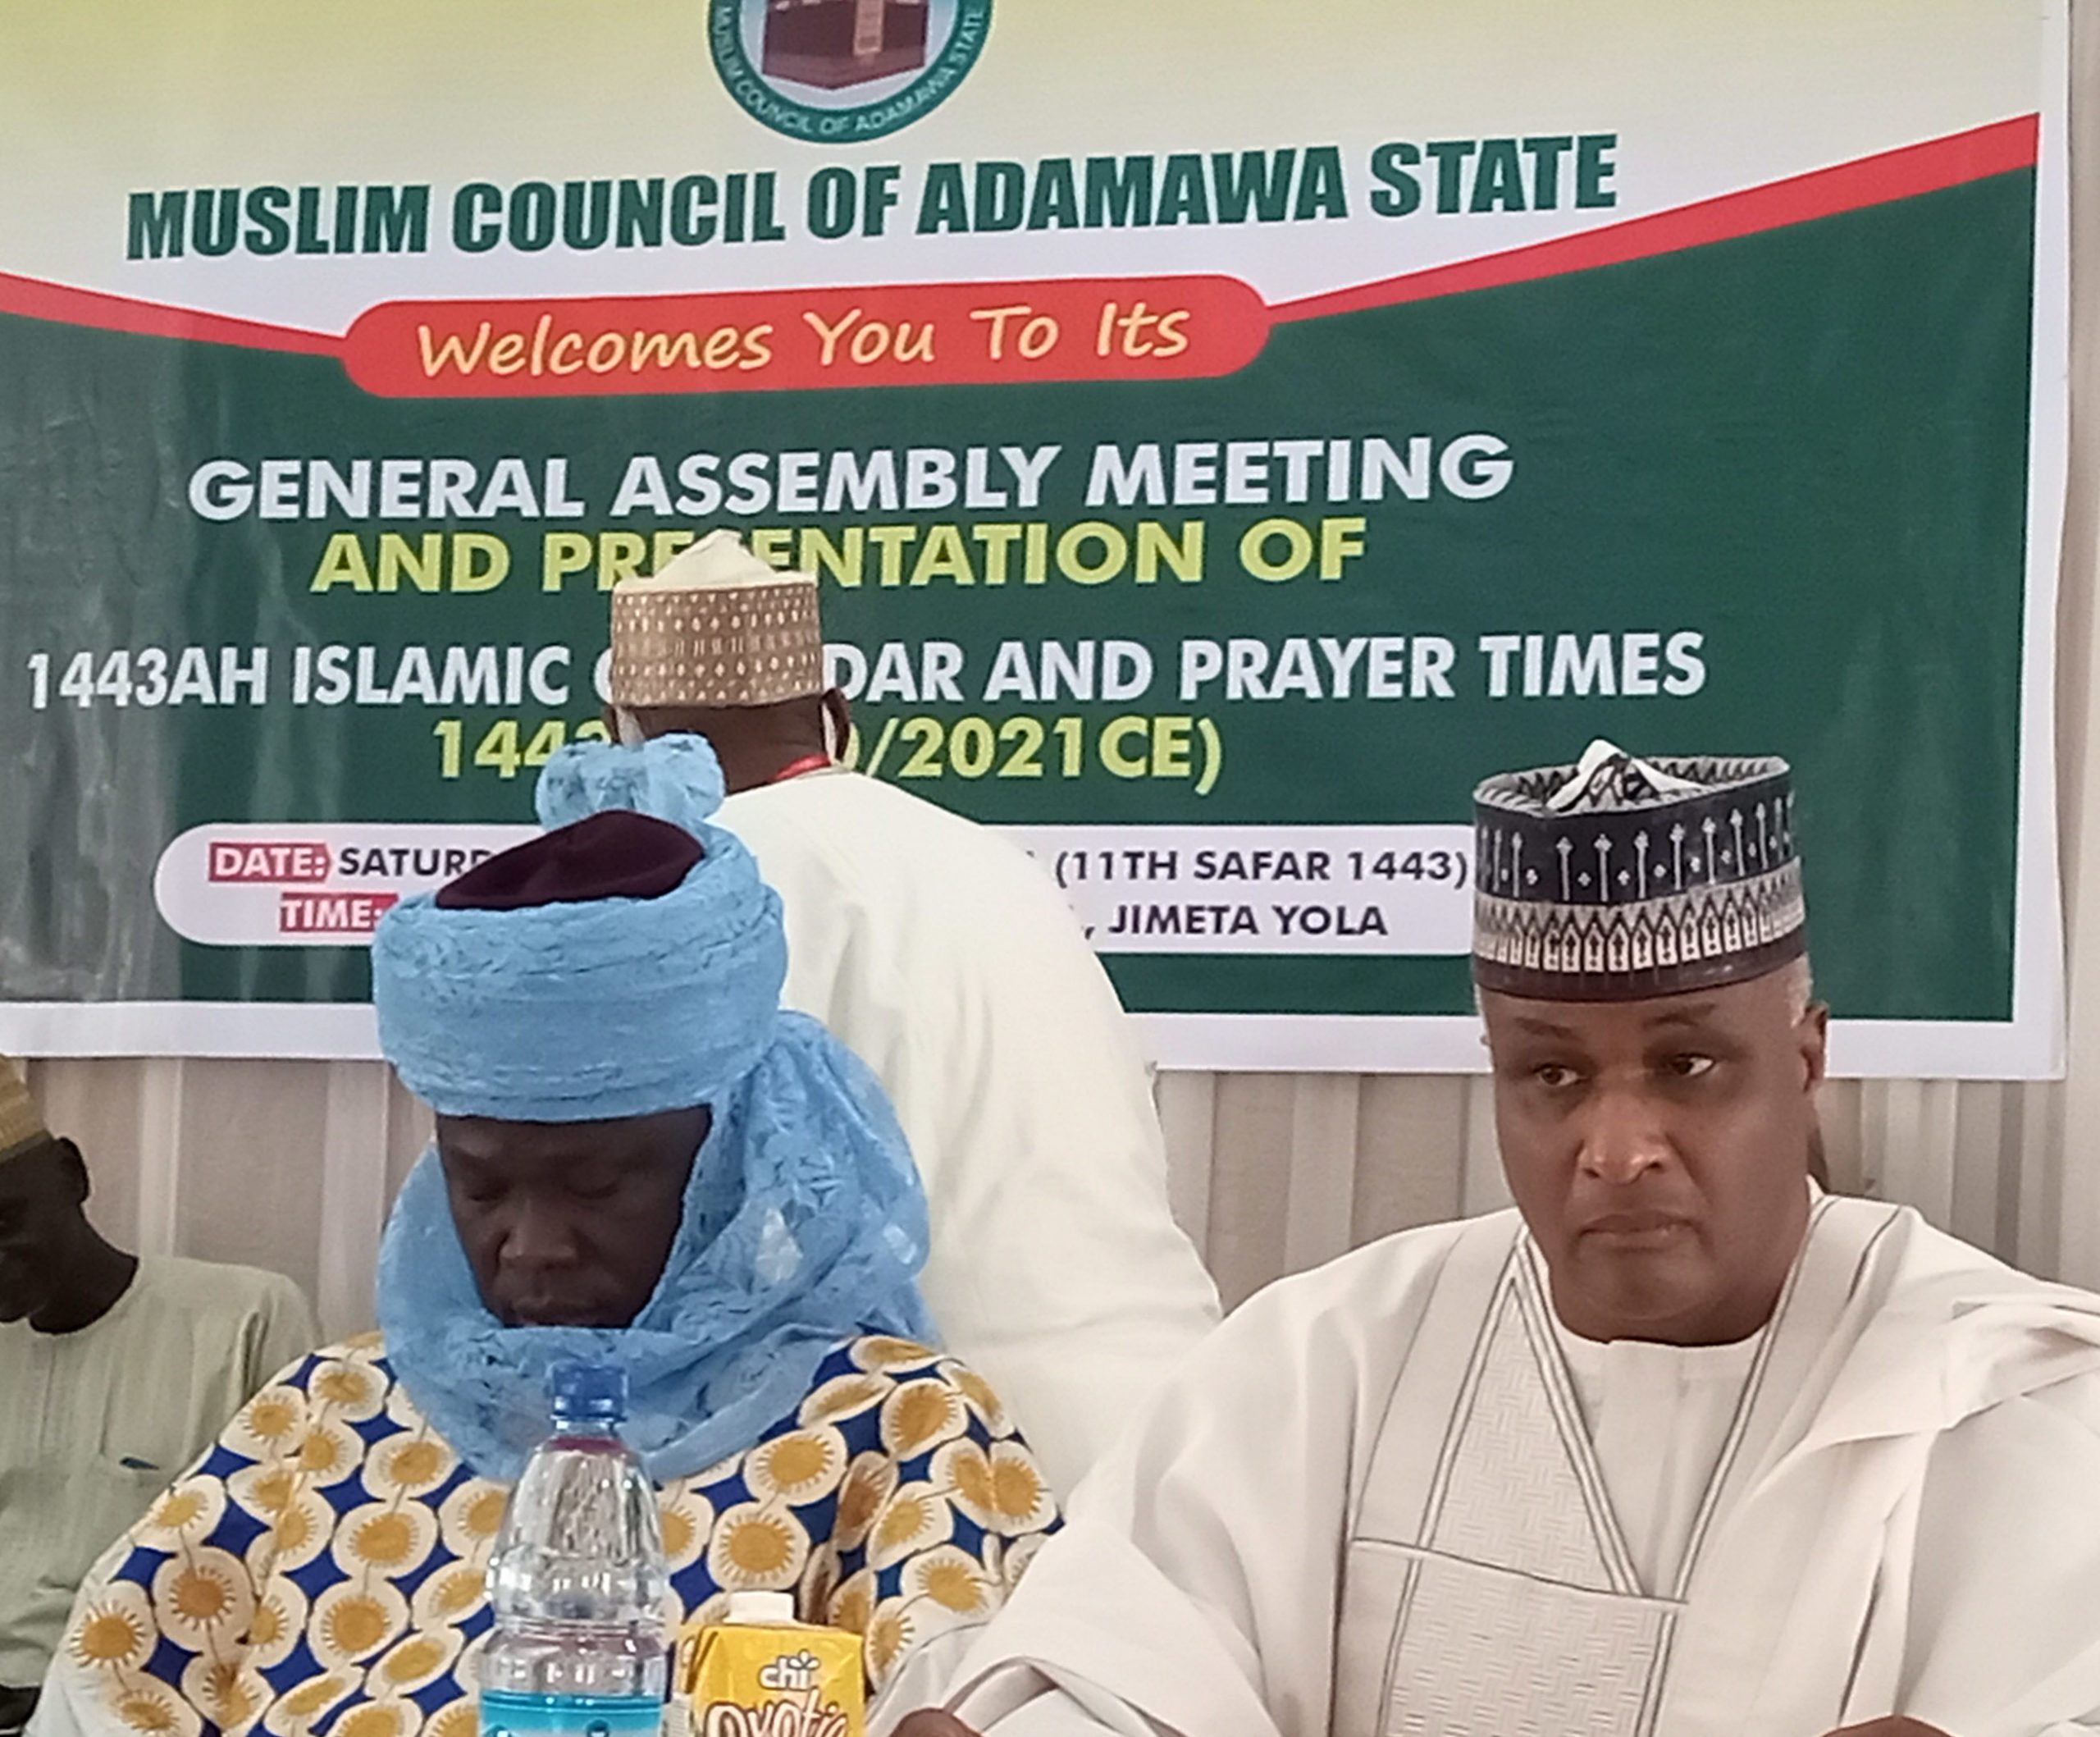 Adamawa Muslim council launches 1443 Islamic calendar, chair harps significance of building trust and time